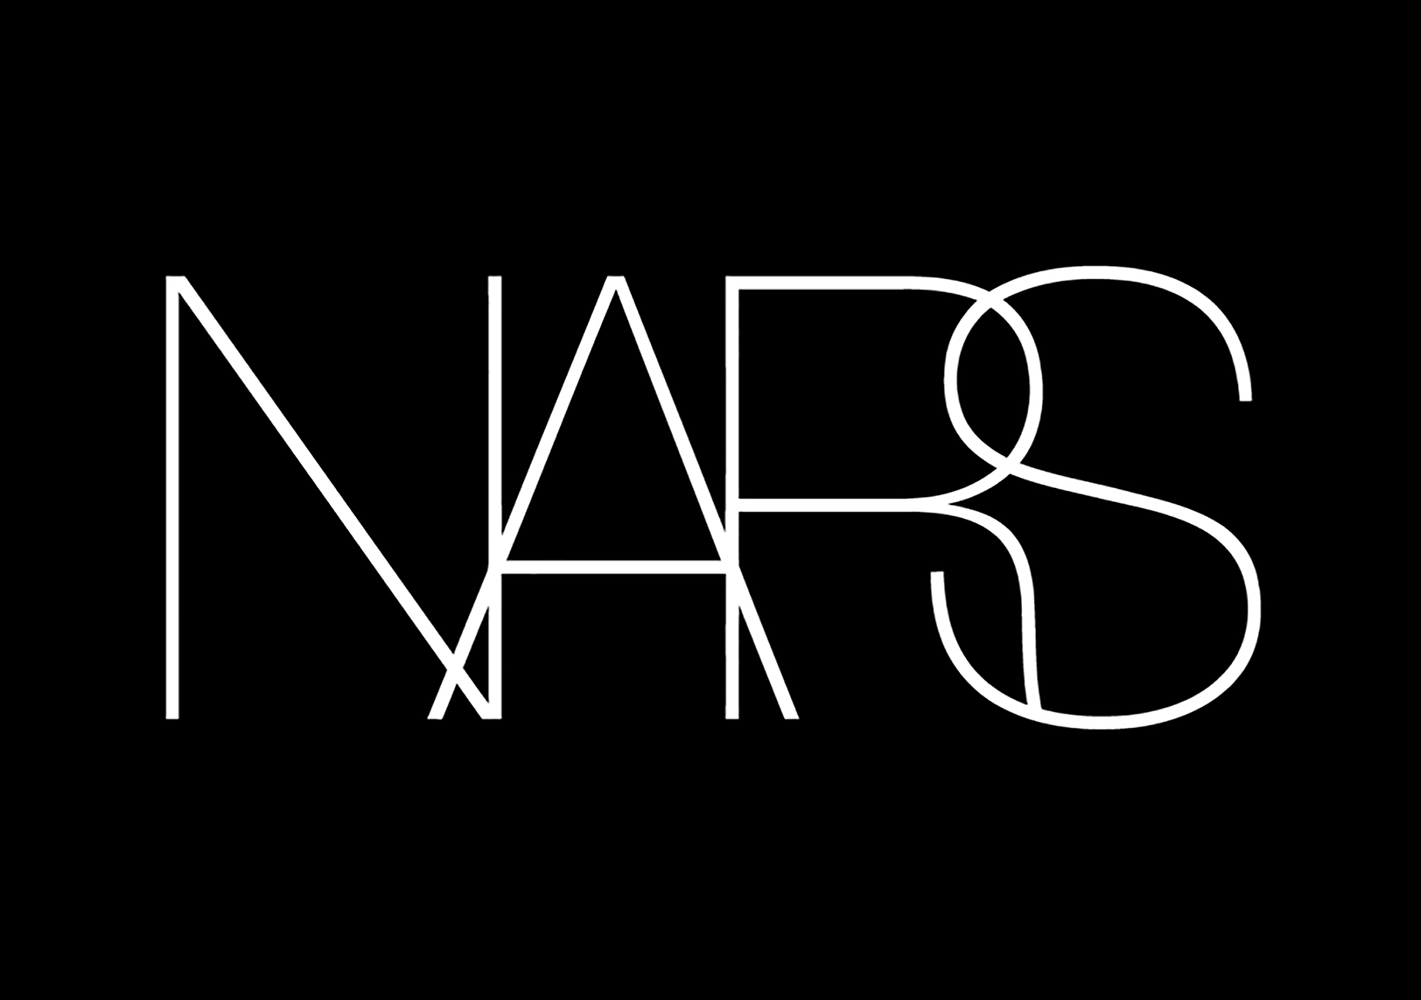 NARS / DIGITAL STRATEGY    Combined a critical assessment of NARS digital efforts with innovative industry practices, to design a 24-month strategy articulating three social media programs that amplified brand awareness and engagement with a more socially conscious consumer.